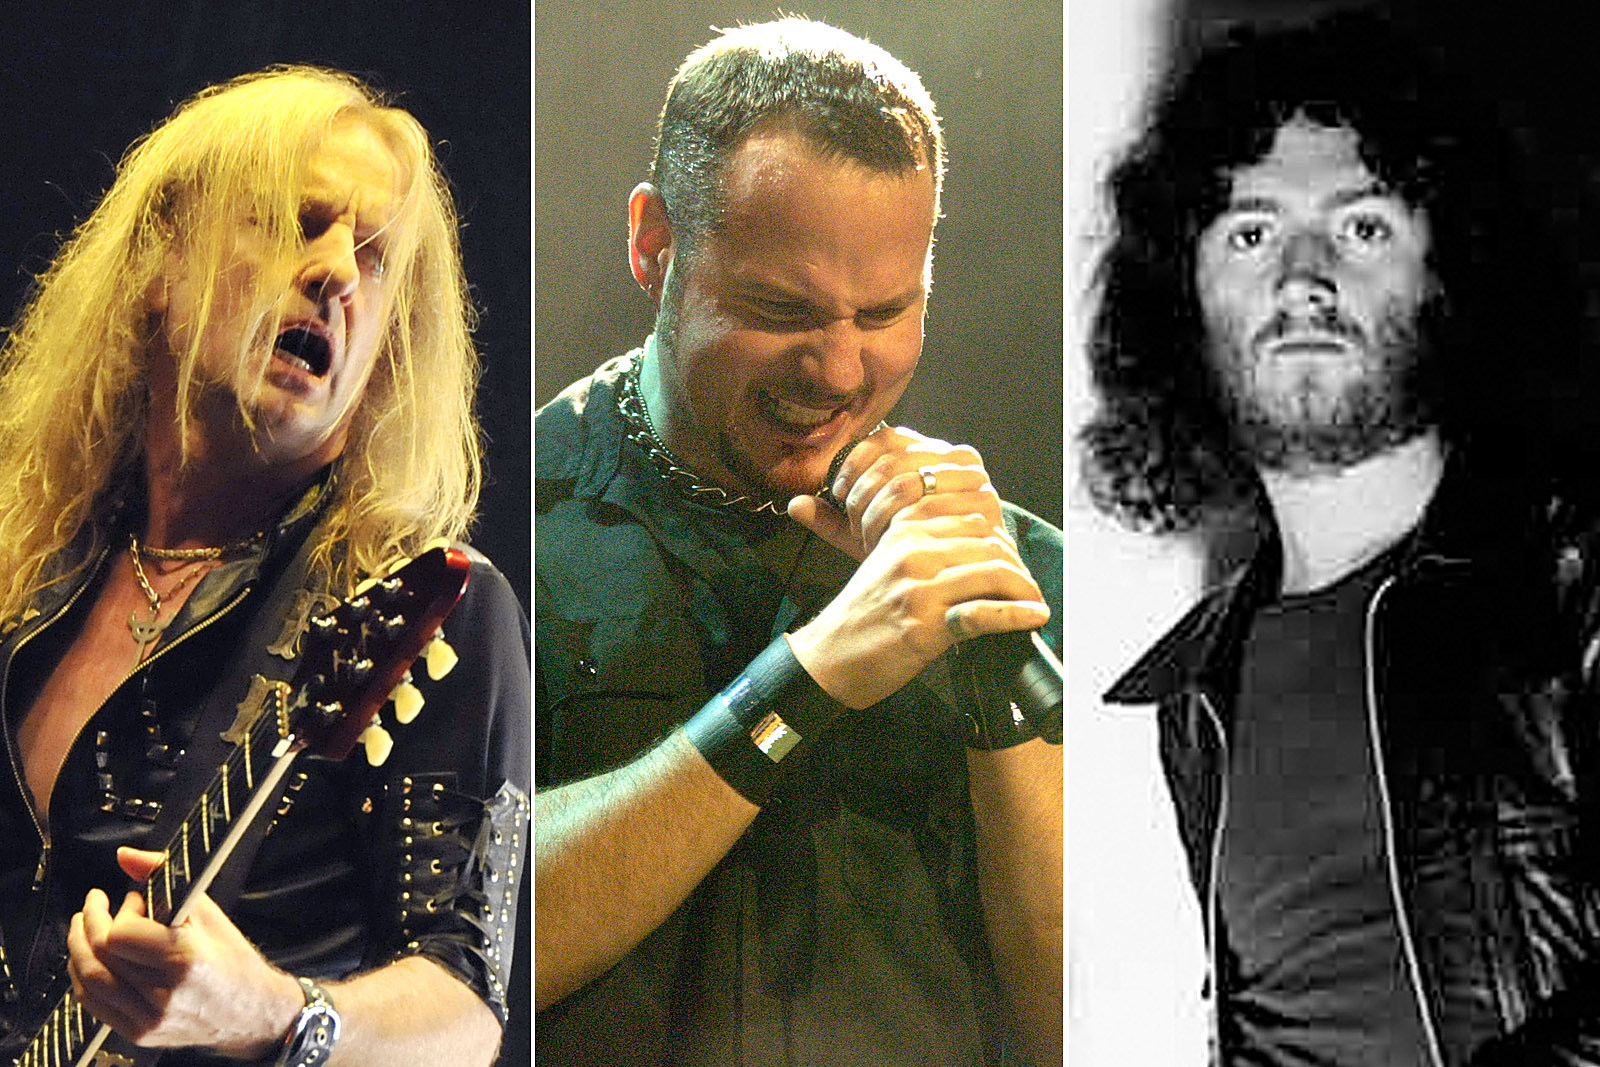 Ex Judas Priest Members K.K. Downing, Tim 'Ripper' Owens and Les Binks to Play Show